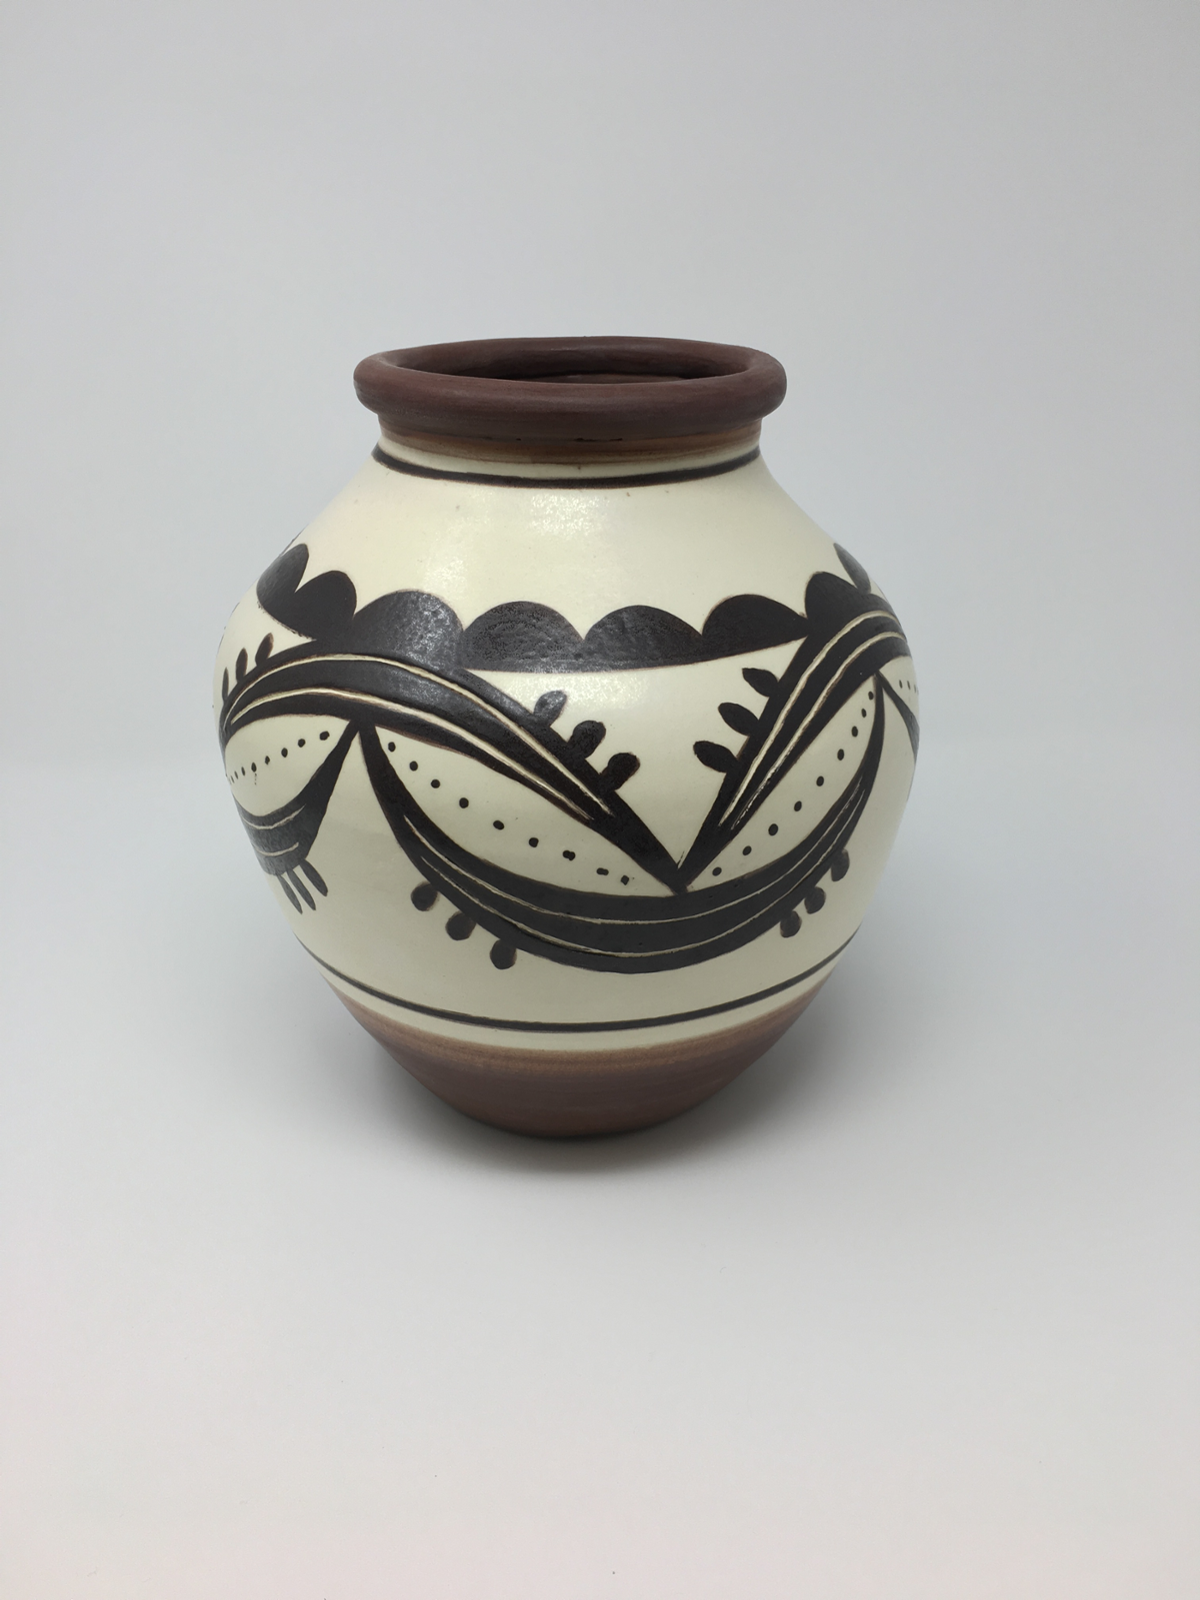 Decorated pot in earthtones